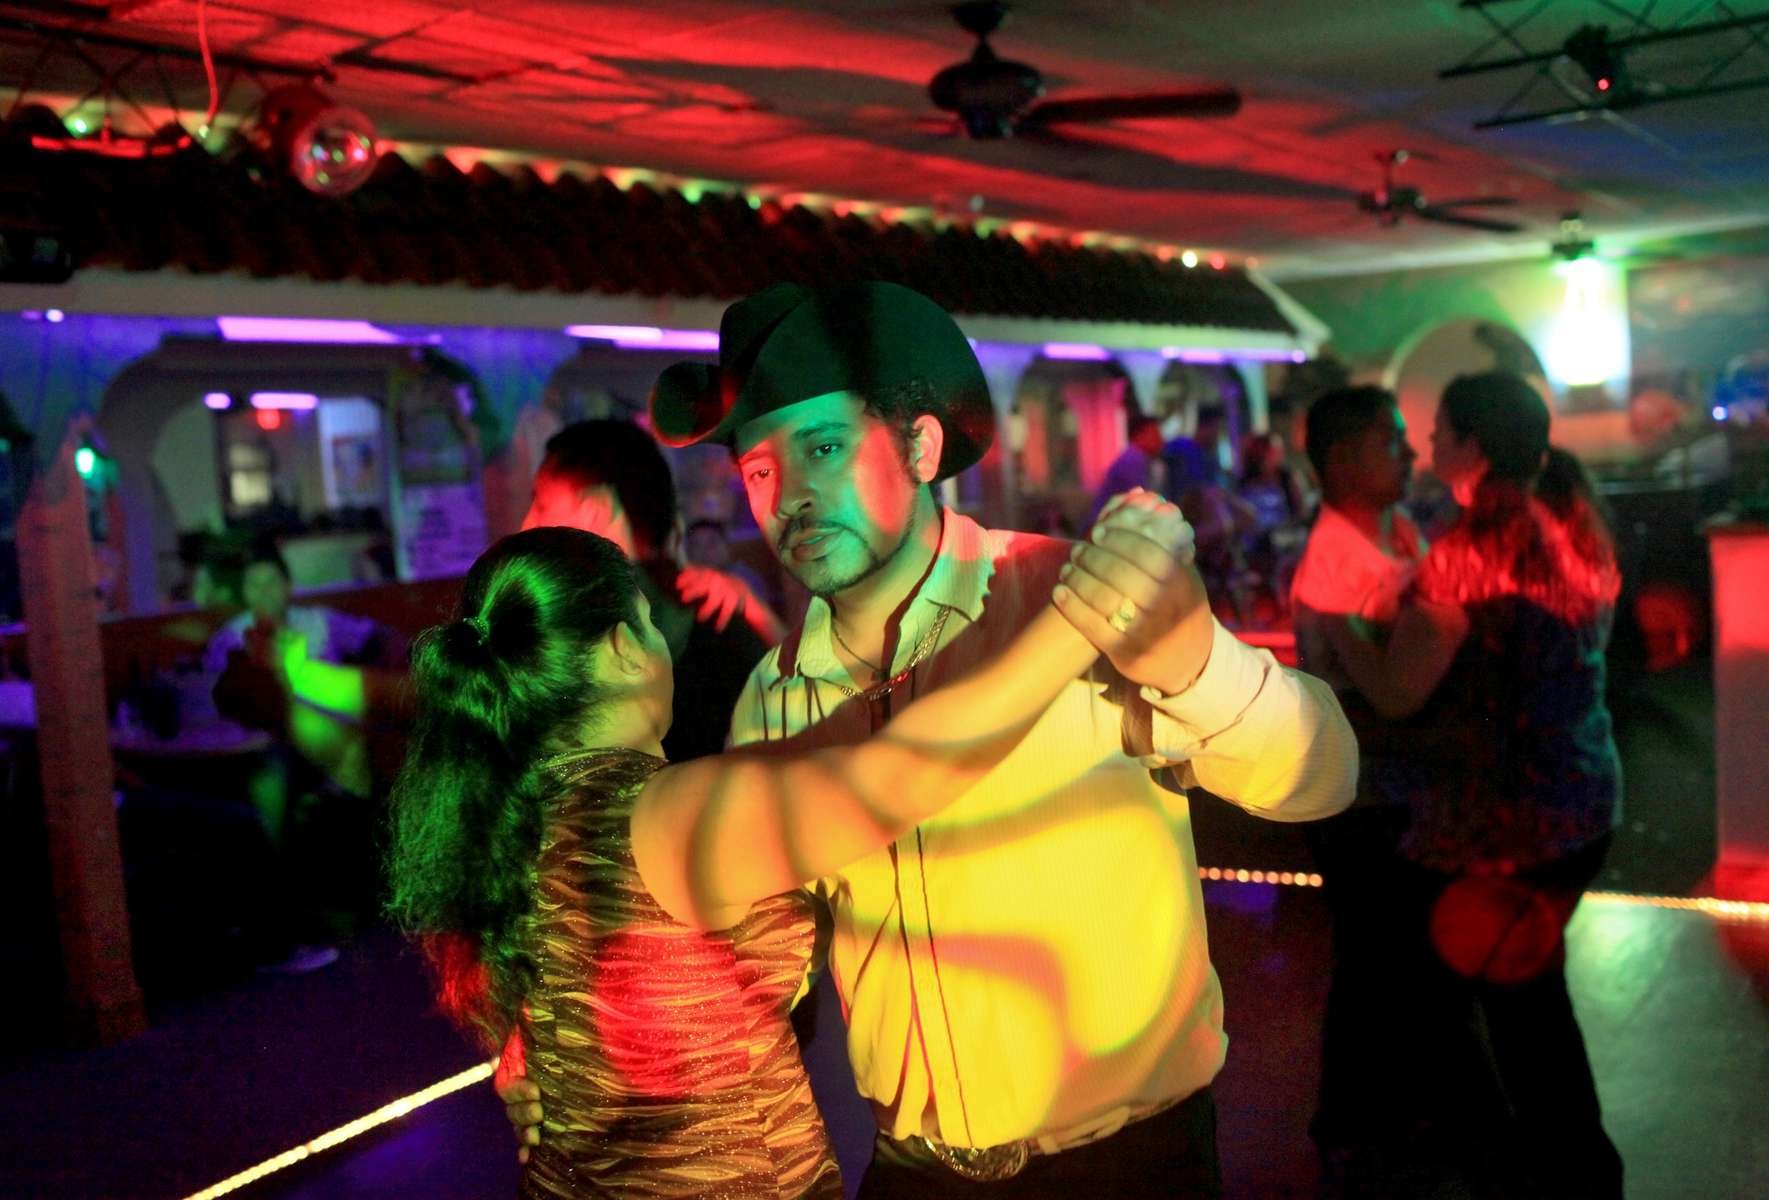 Martin McDrano (center) and Alberta Mejia dance to the music at the Acapulco Restaurant and Lounge in St. Ann. Emestina Zegar, owner of the Acapulco, thinks fewer people are frequenting her business because they fear being stopped by the St. Ann police.